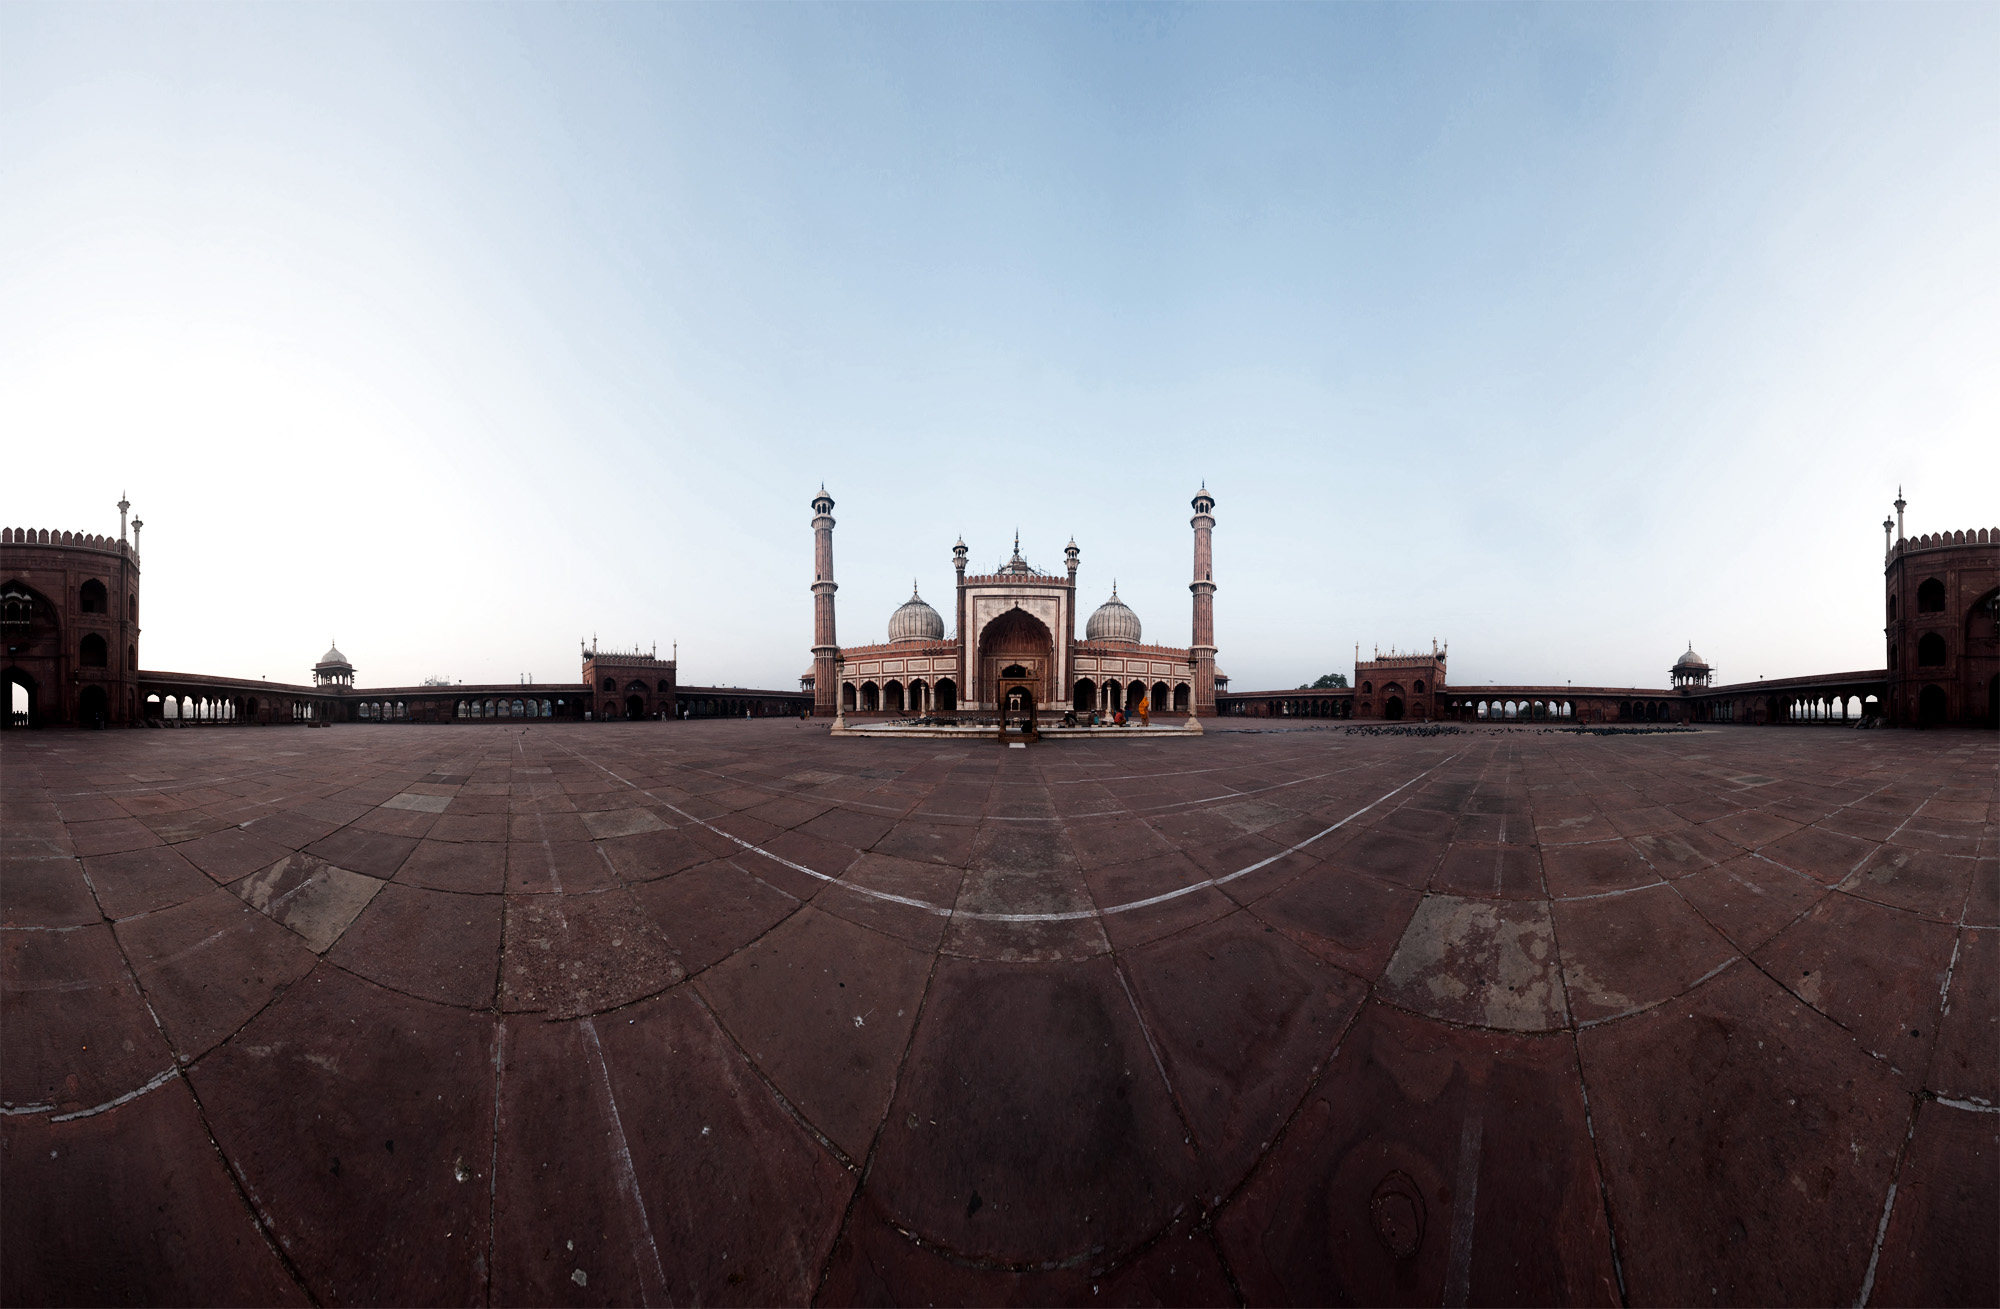 Jama Masjid Panorama Composite Photo - Delhi, India - Daily Travel Photos